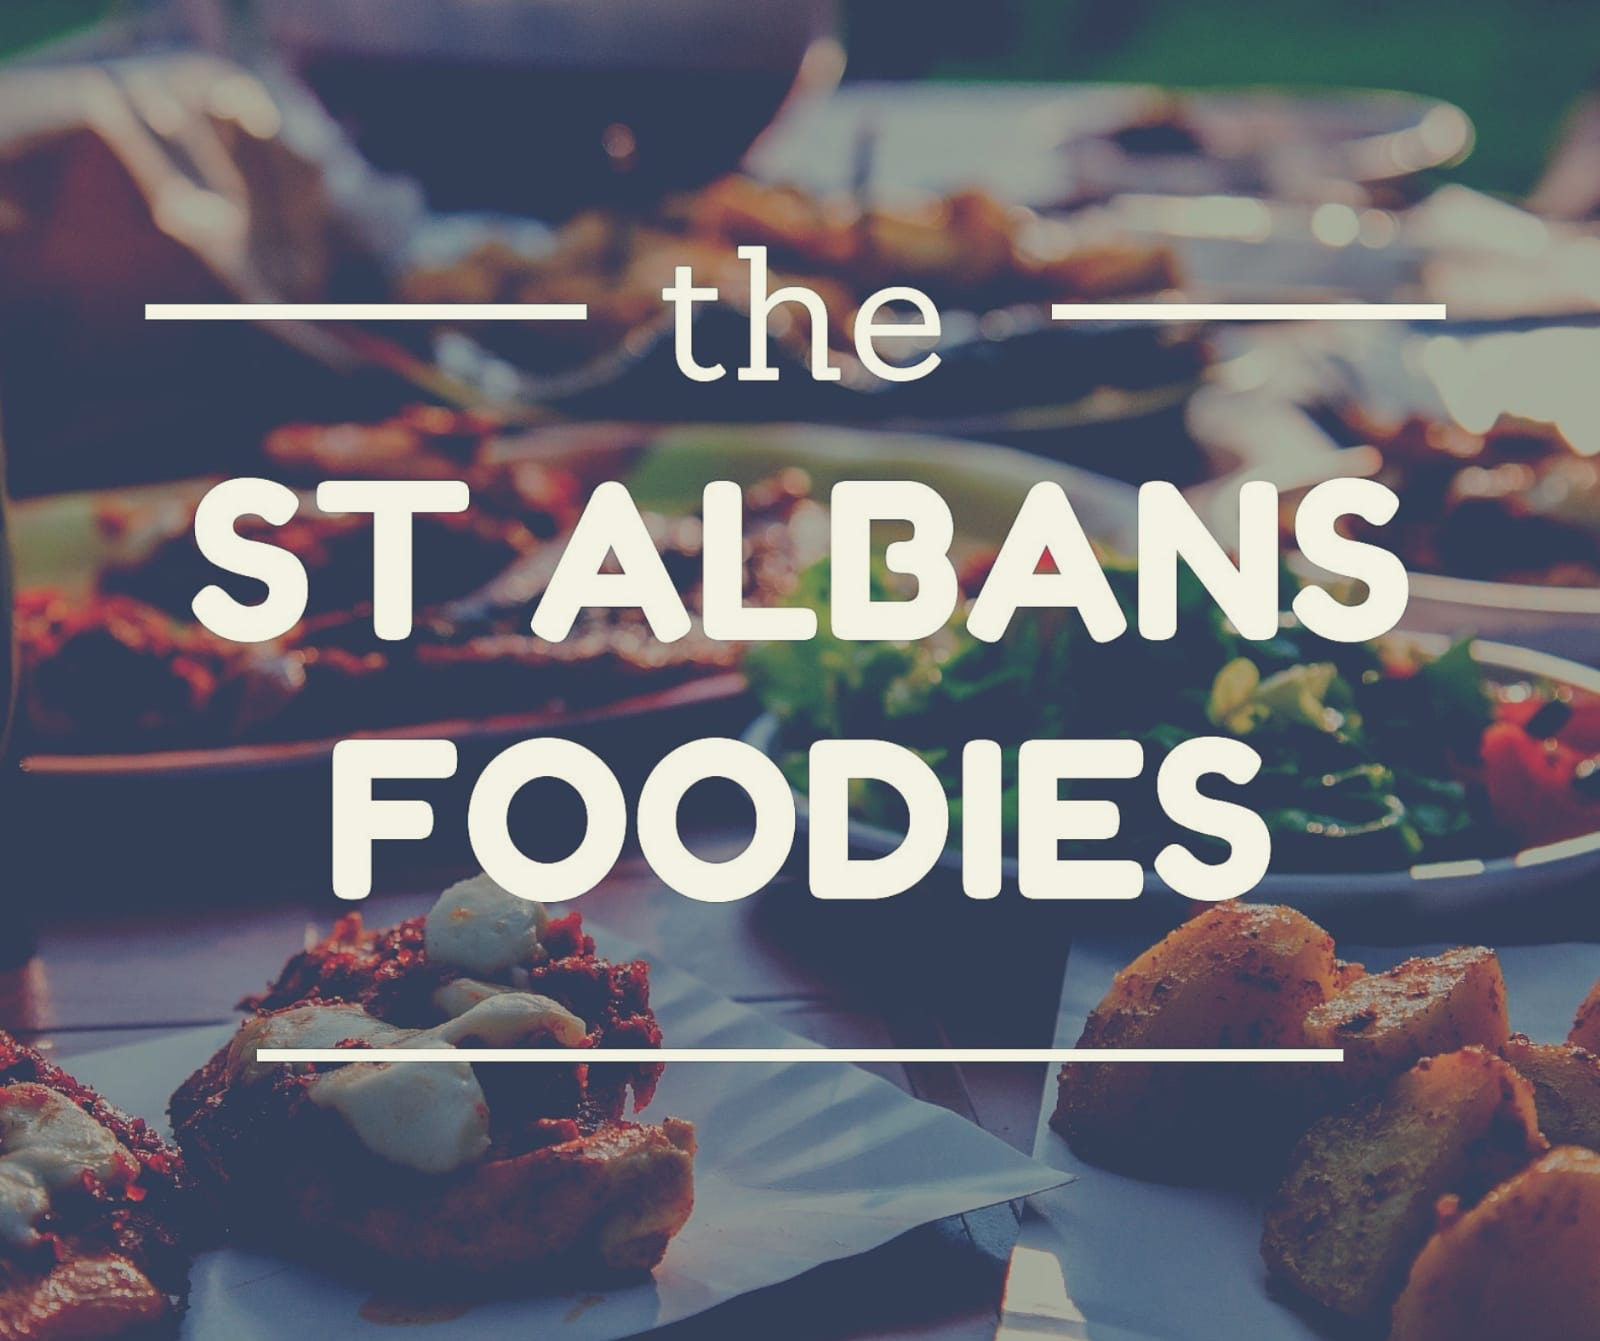 The St Albans Foodies